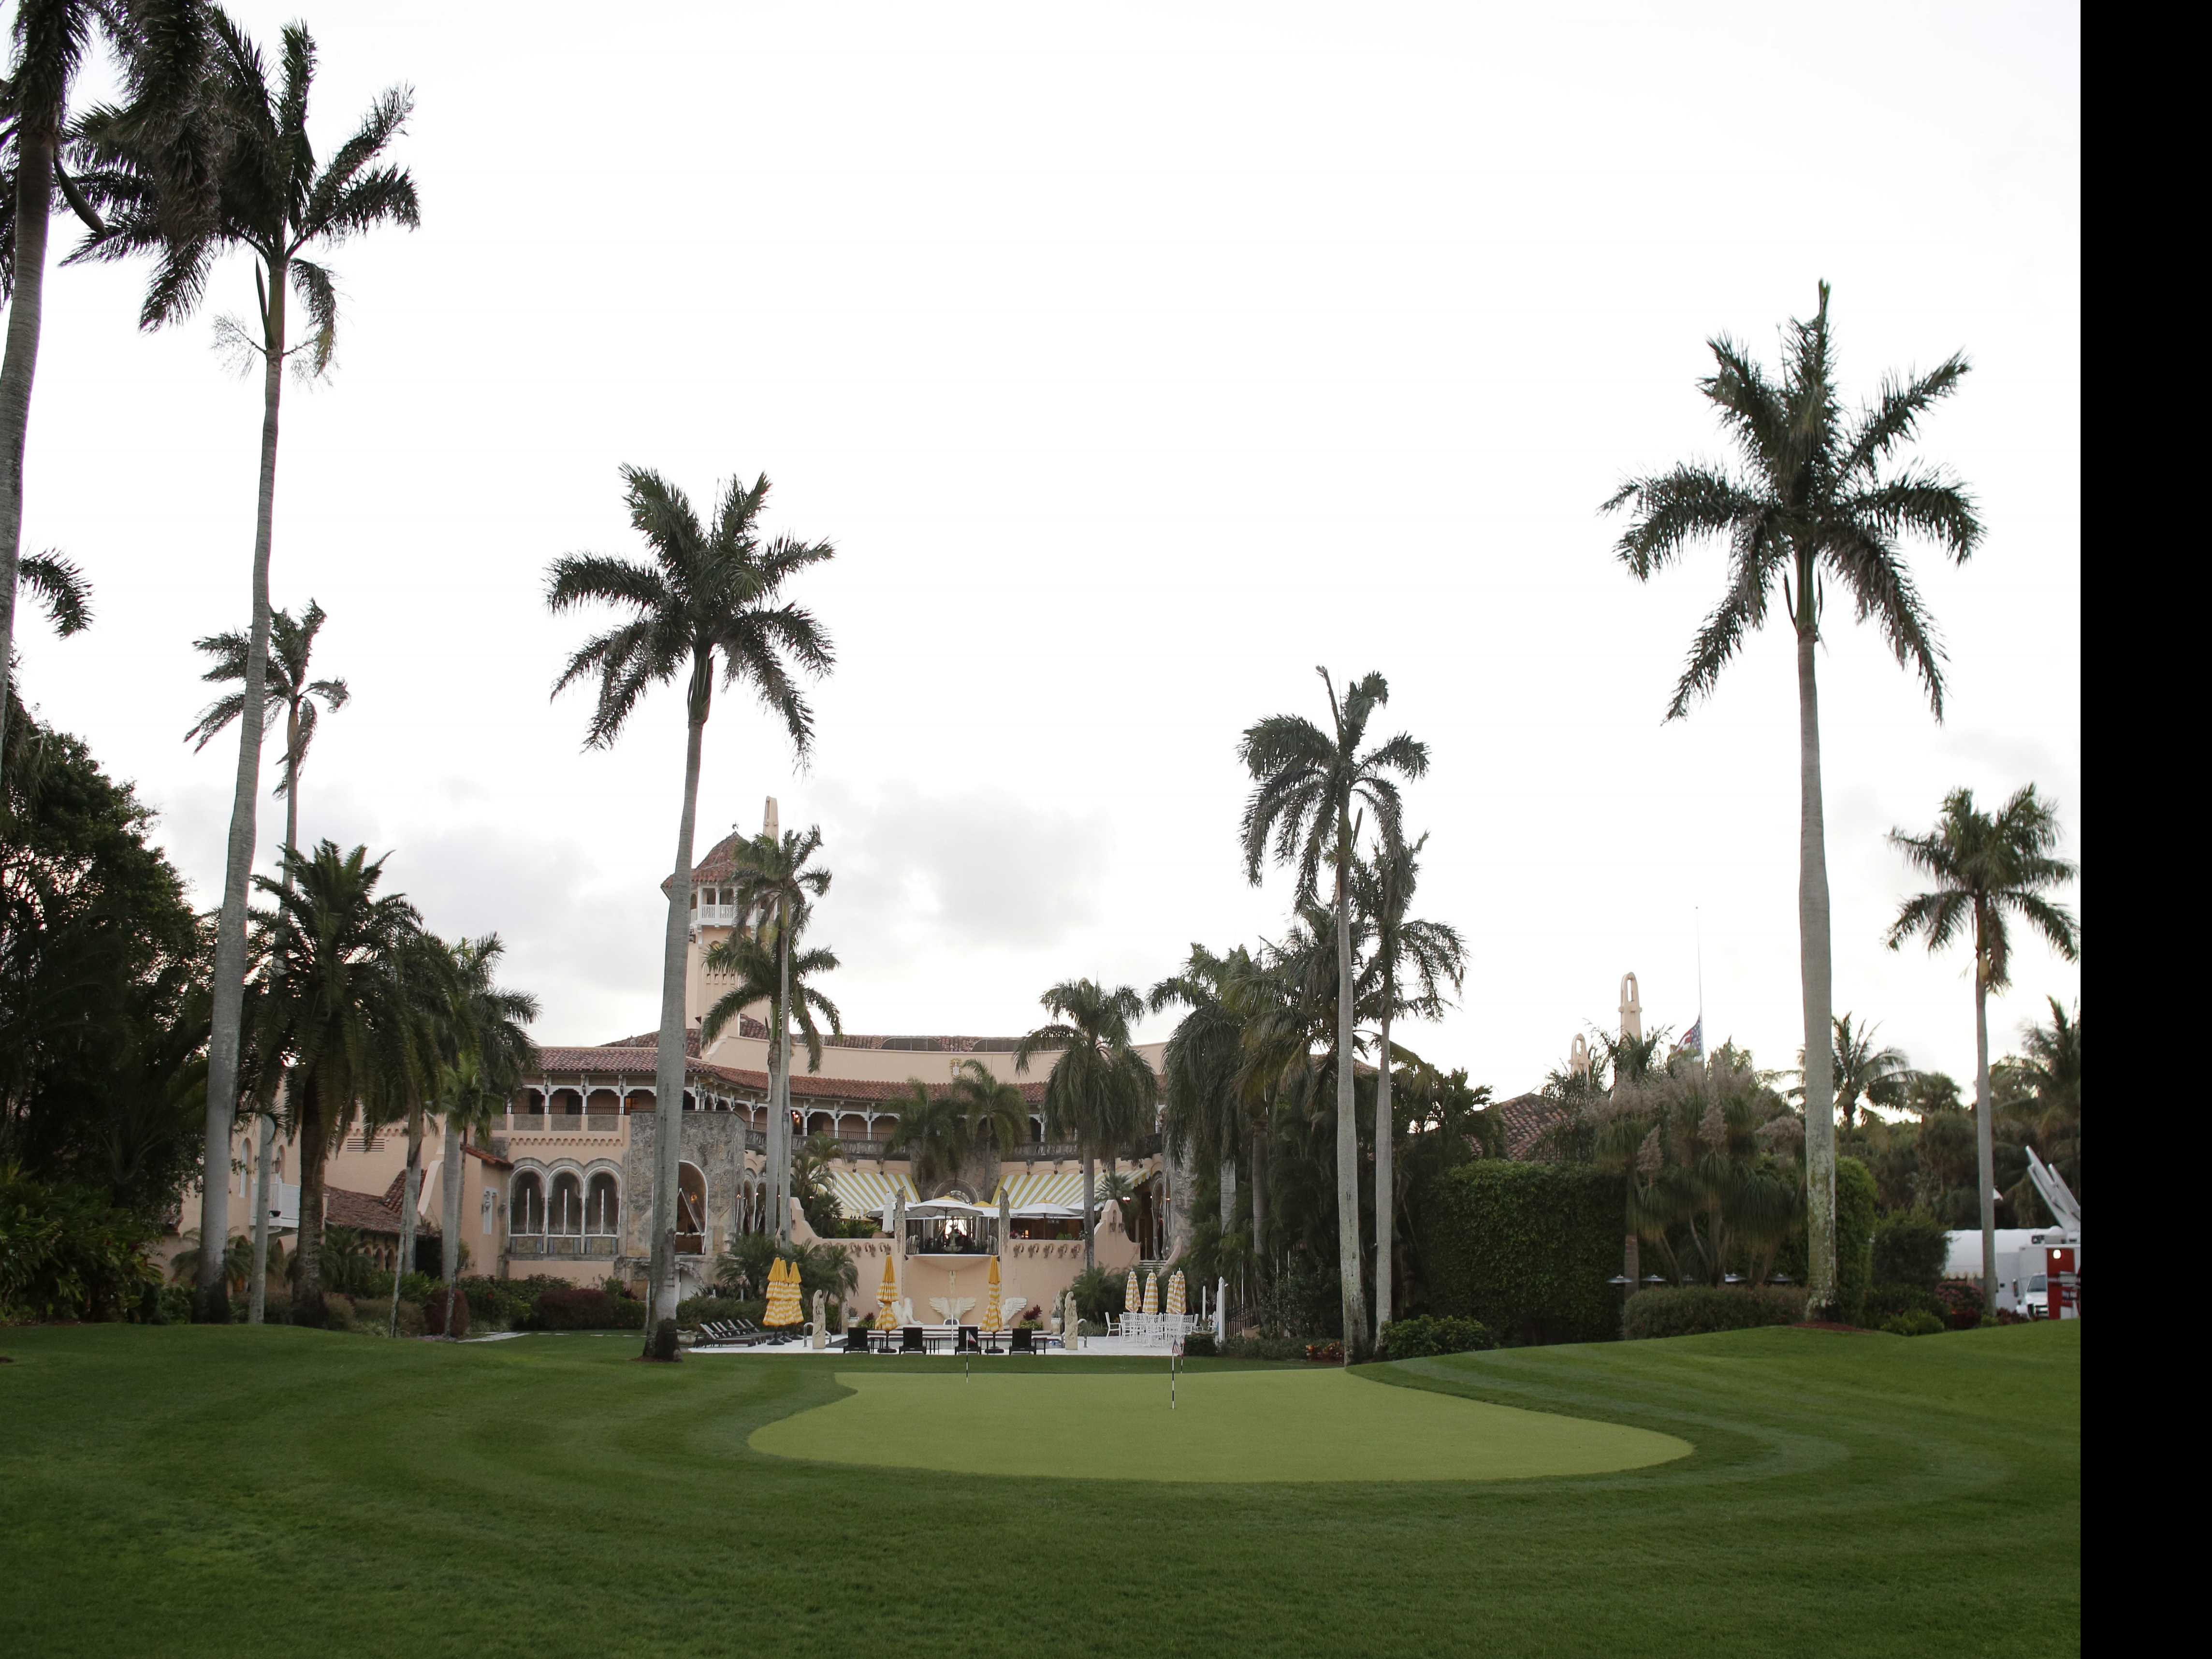 Irma vs. Mar-a-Lago: Bet on Trump's House